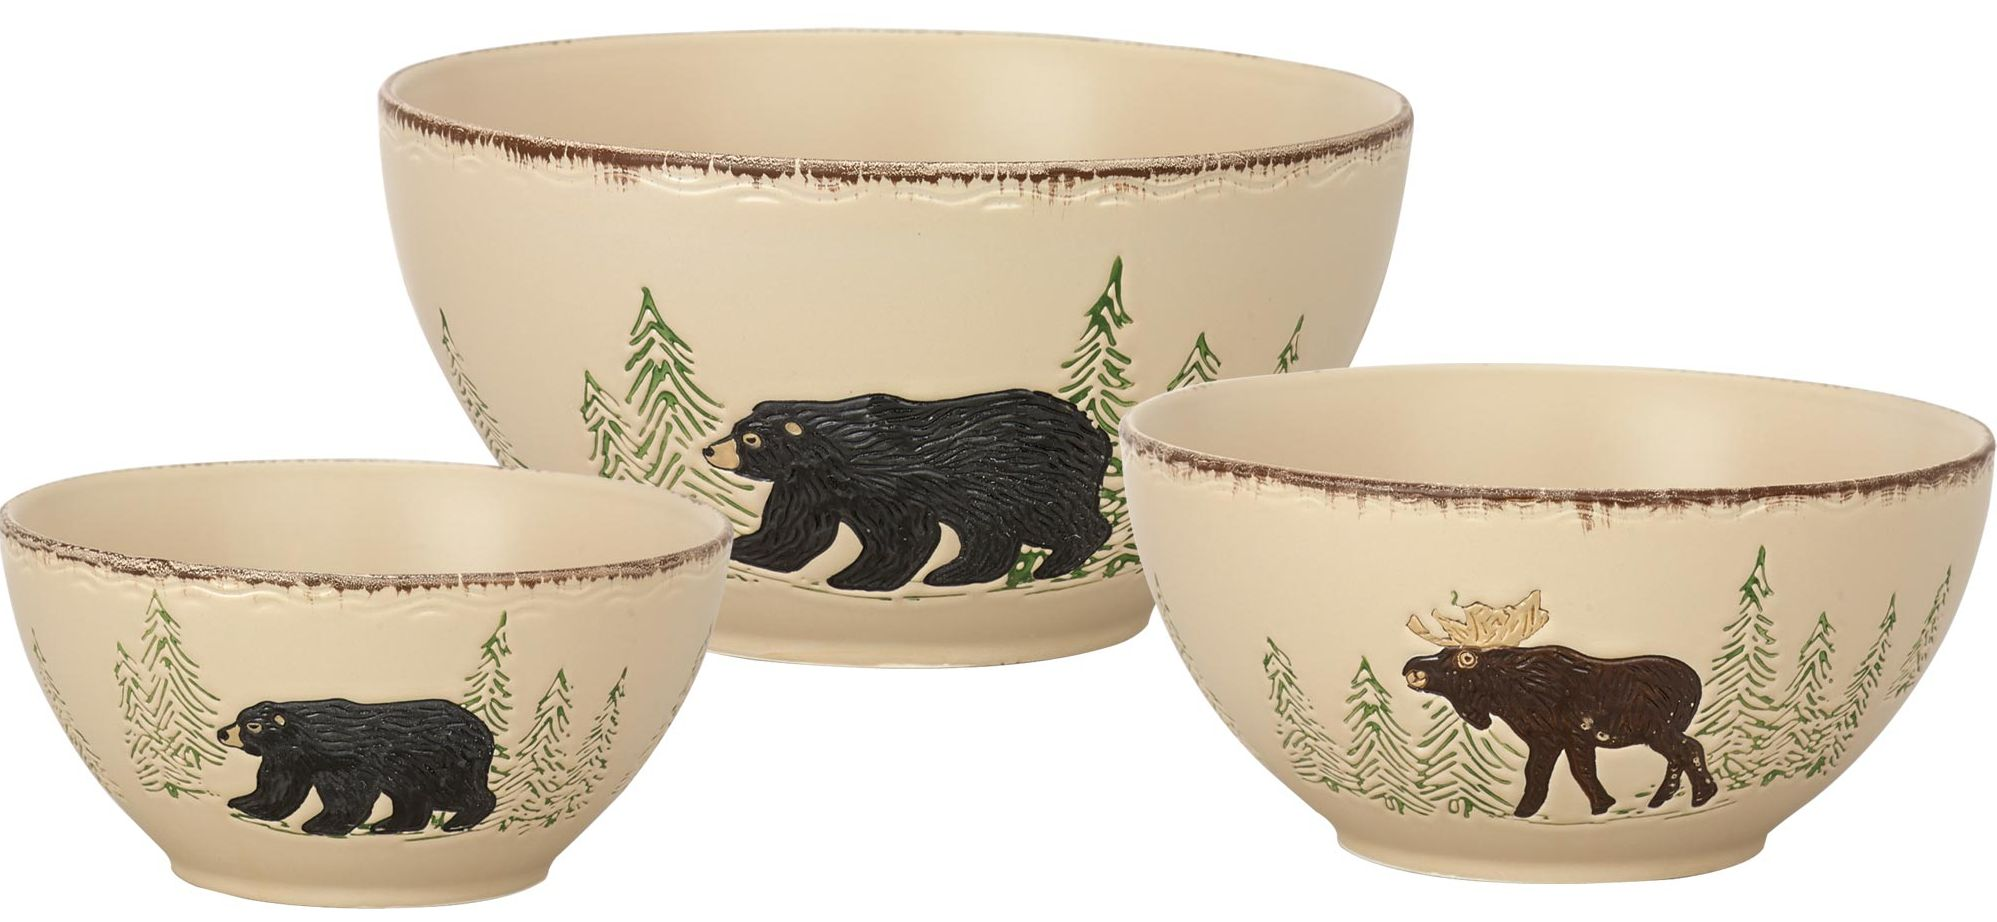 PKD-493-689-Rustic-Retreat-Mixing-Bowl-Set-LRG